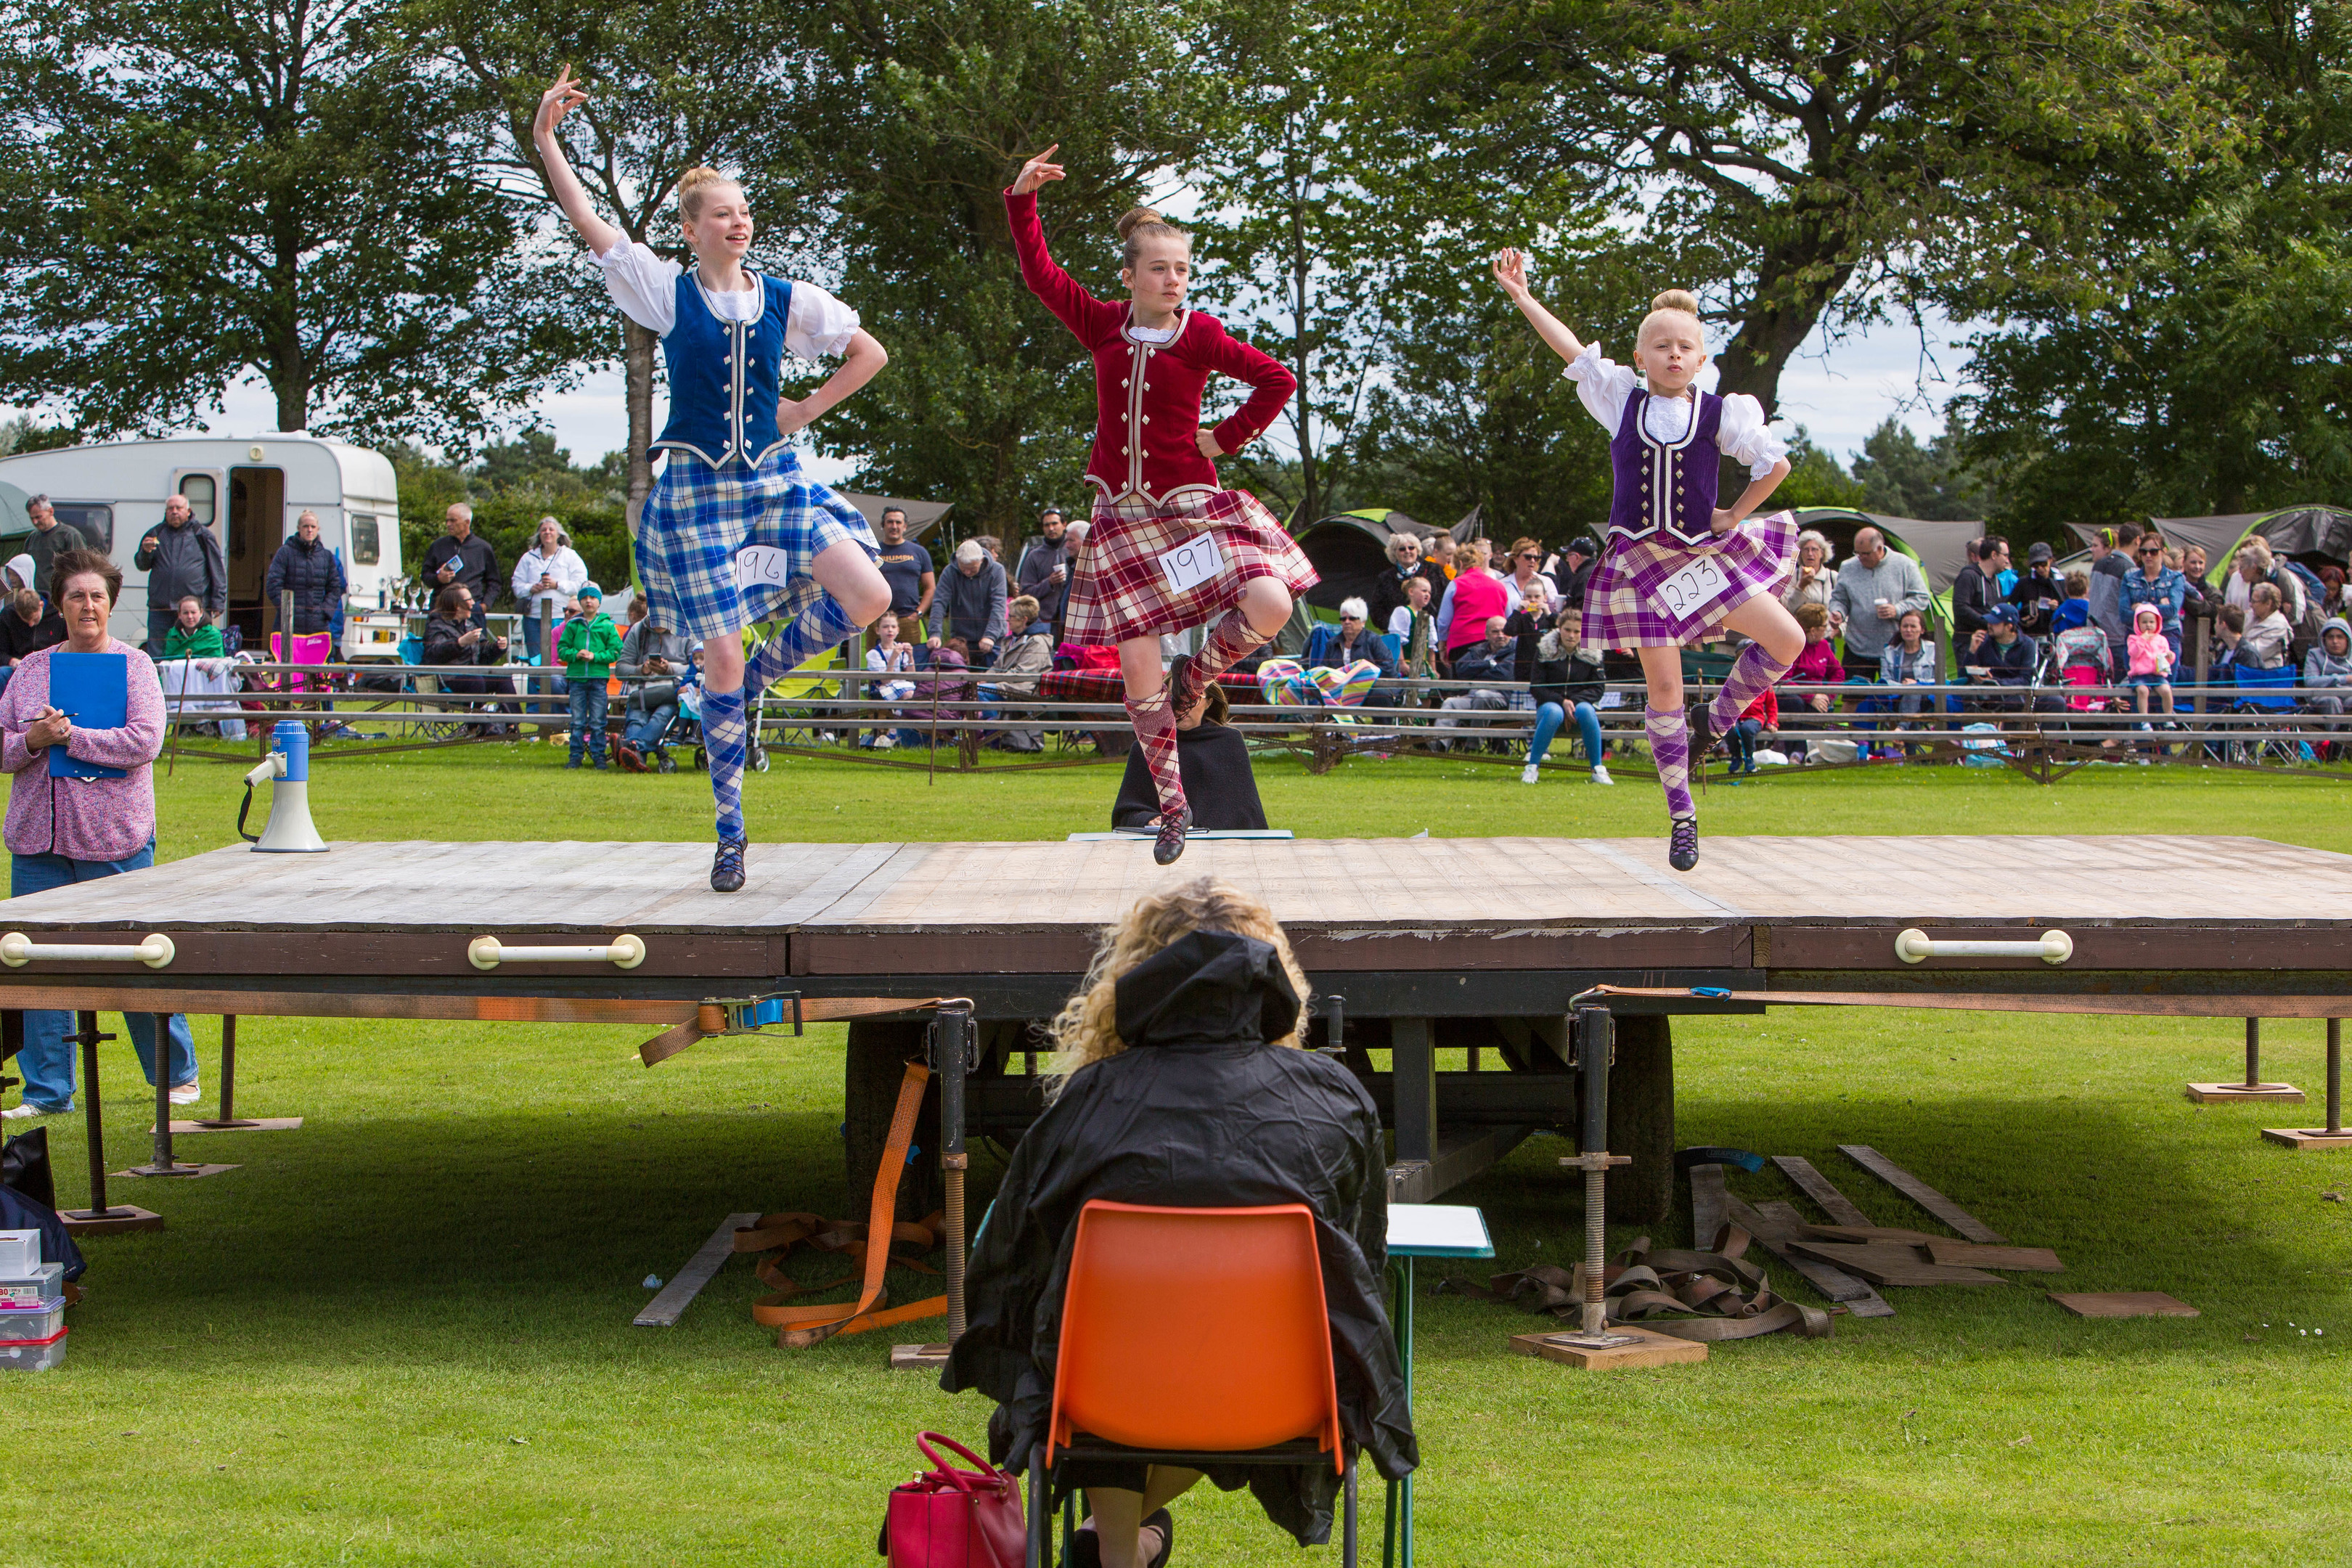 Highland Dancers take to the stage at Thornton Highland Games.